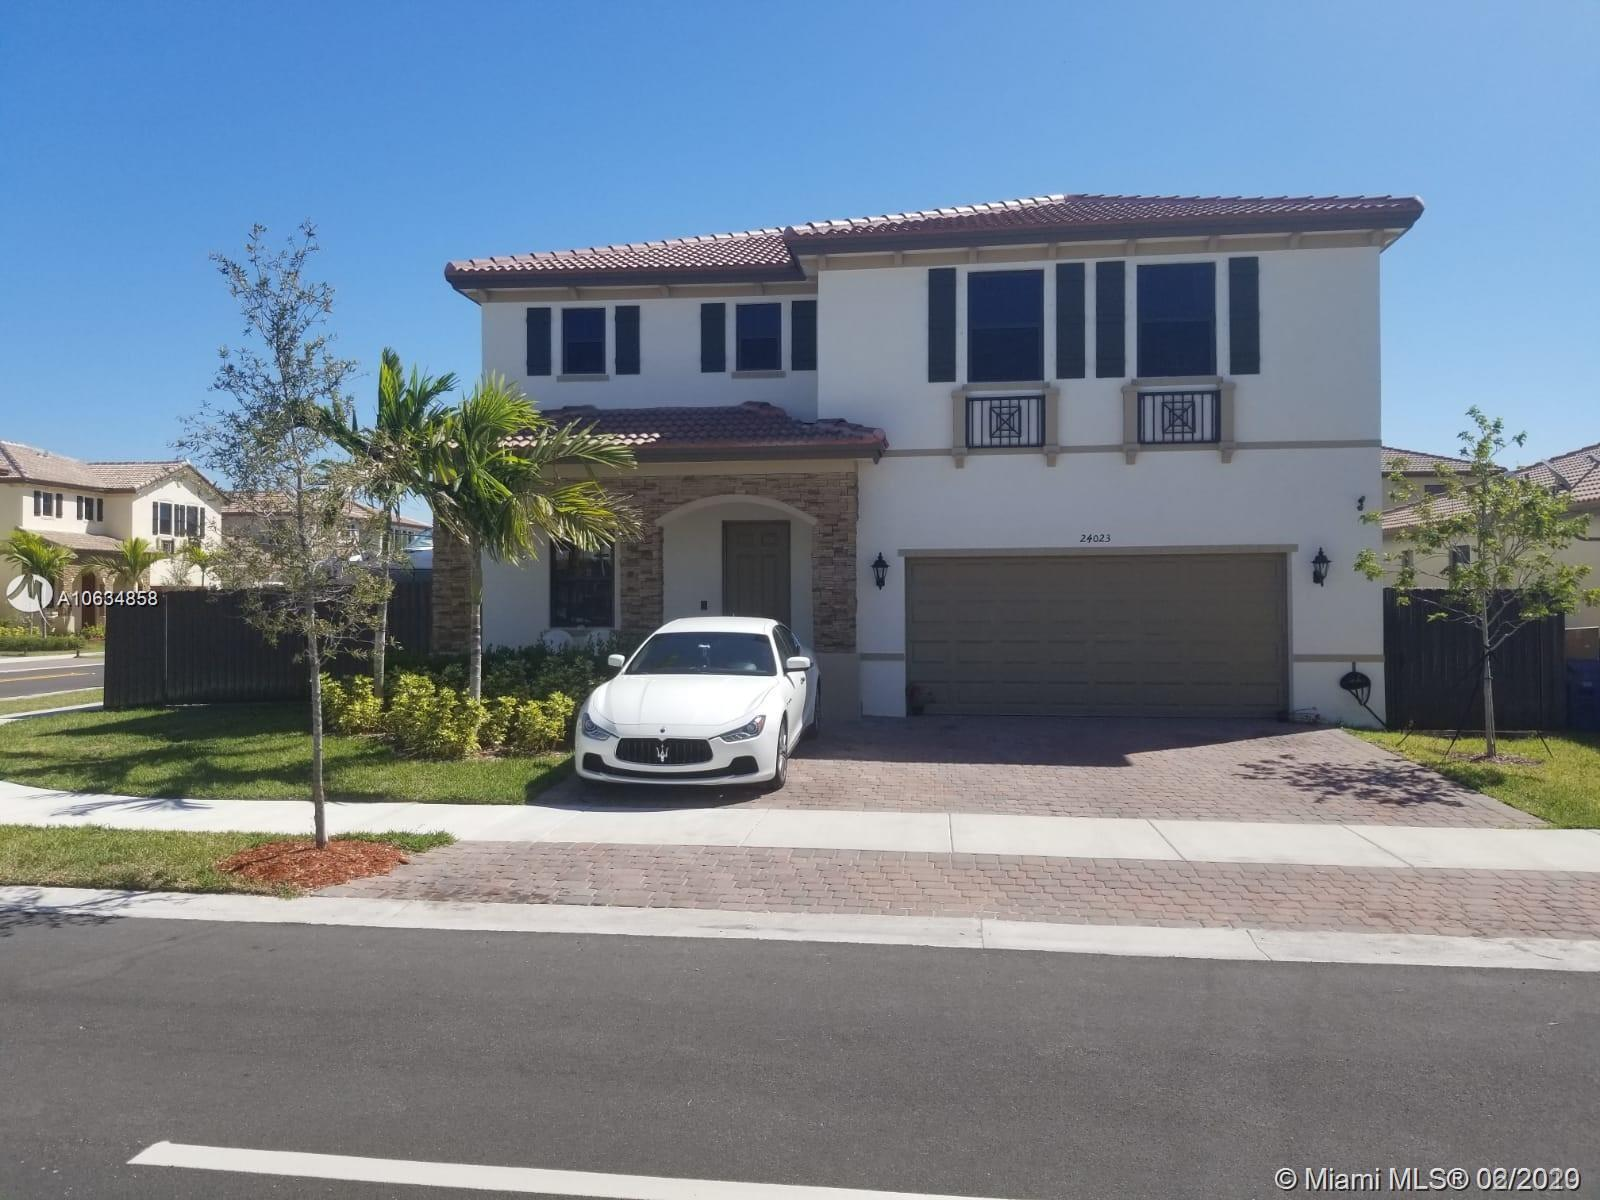 This beautiful two-story home built in 2017 has 4 bedrooms, 2.5 bathrooms, 2 car garage, beautiful pool area with a gazebo in the backyard, and an outdoor kitchen. Has plenty of space for your boat. Only a few blocks away from the turnpike expressway and near major stores like Walmart, Publix, Southland Mall. Don't miss this opportunity! Make your move, bring your offer :)